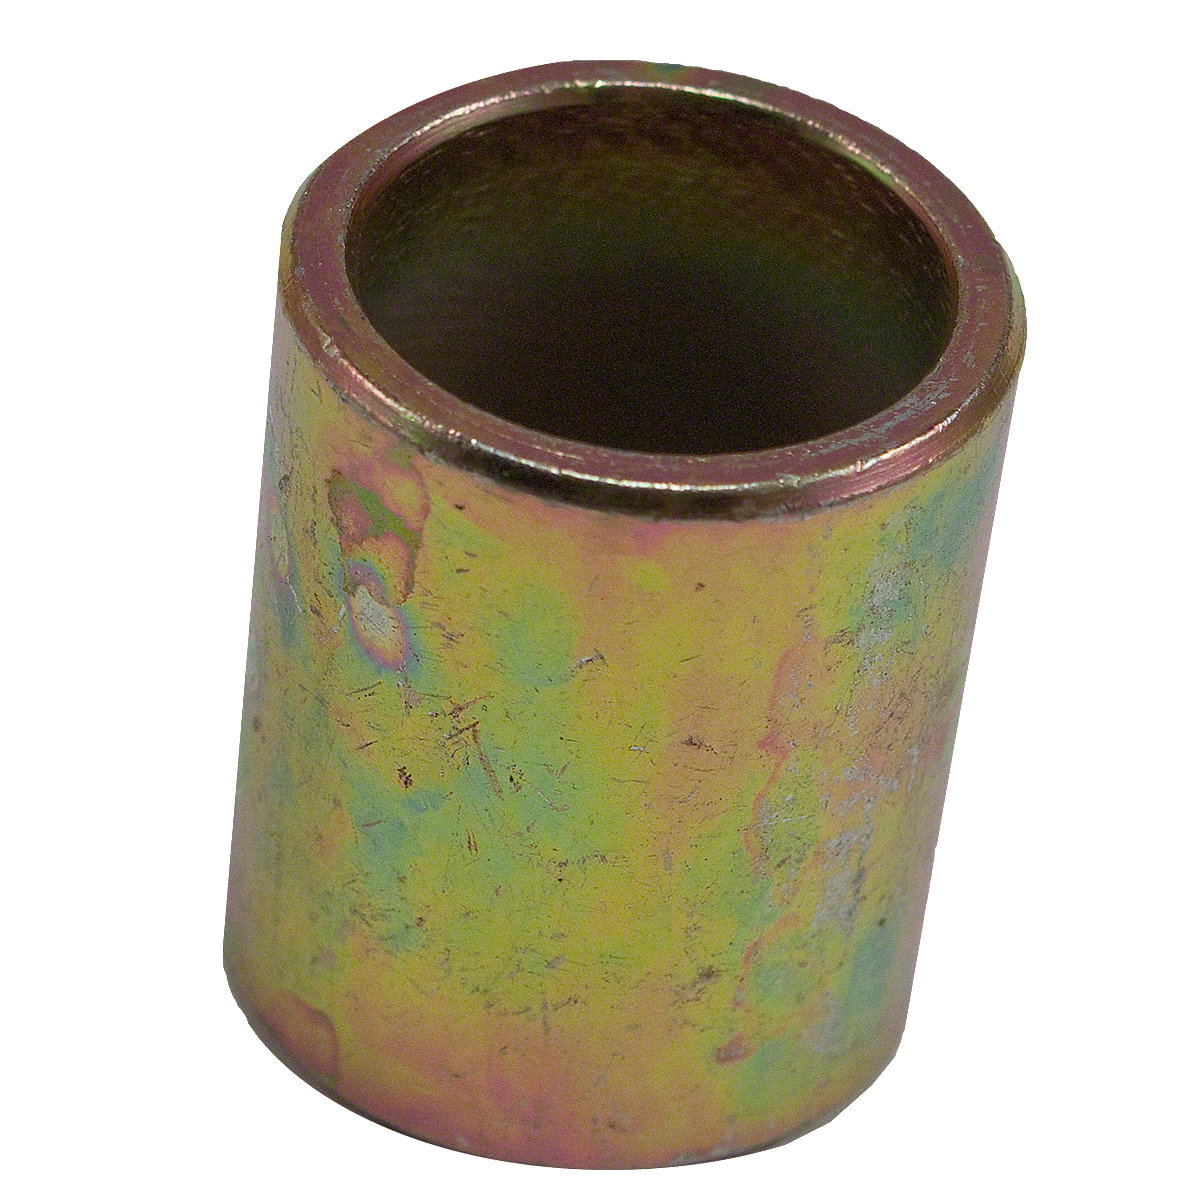 Lift Arm Bushing : Abc pt lift arm reducer bushing toplink